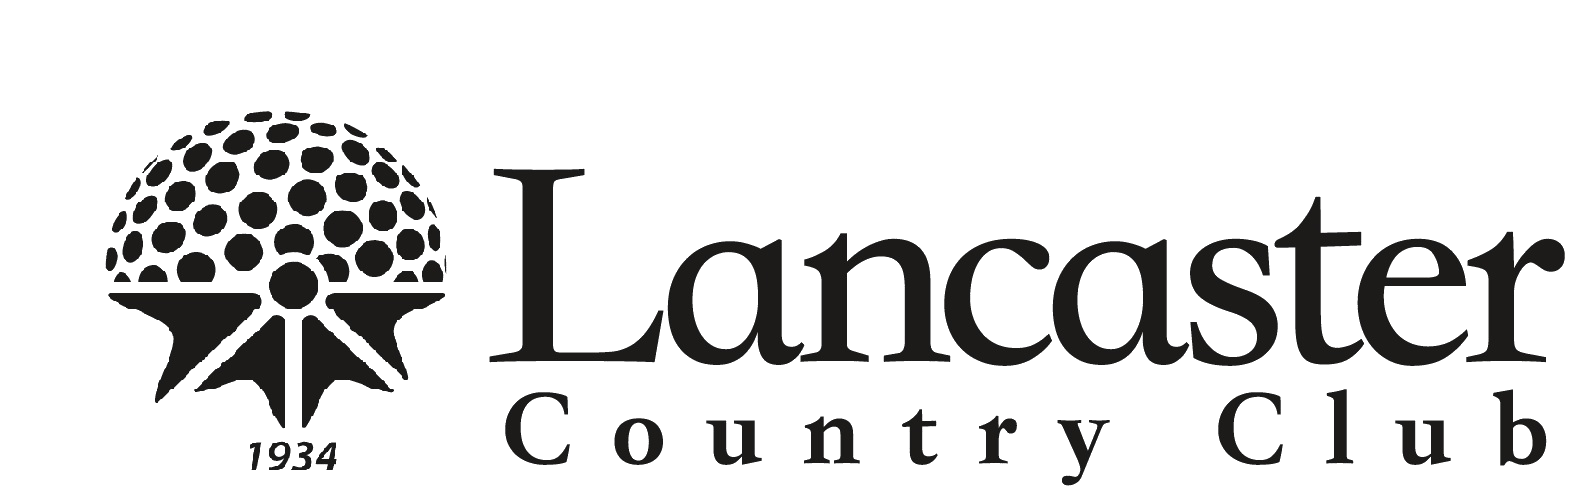 Lancaster Municipal Country Club